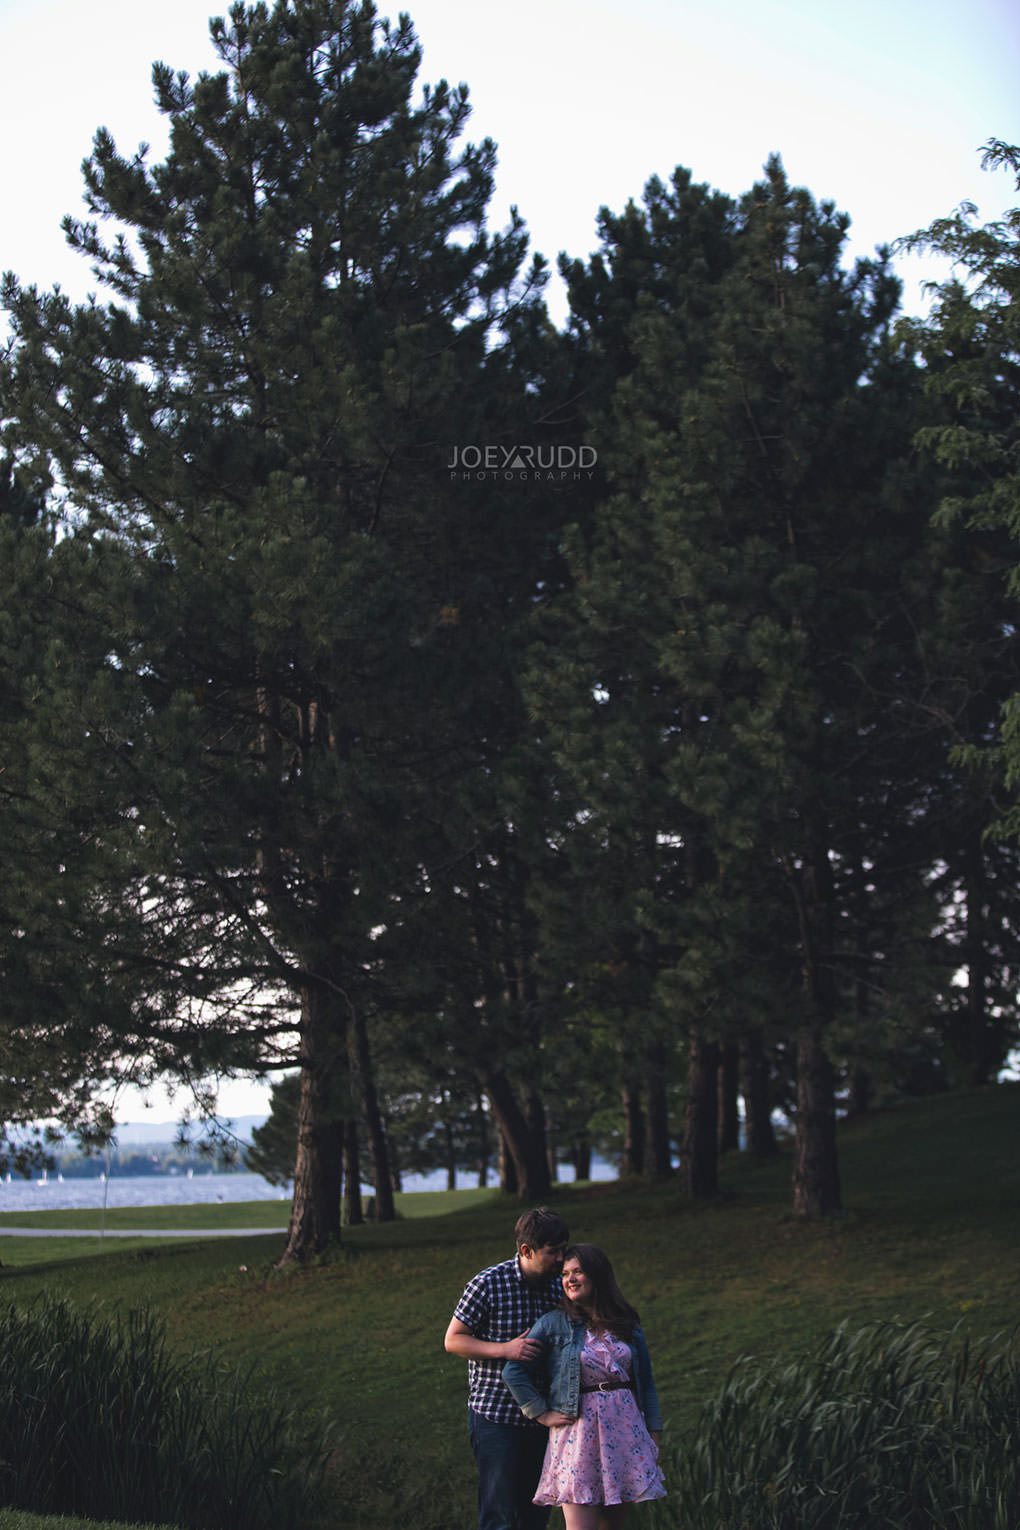 Andrw Haydon Park Engagement Photos by Ottawa Wedding Photographer Joey Rudd Photography Trees